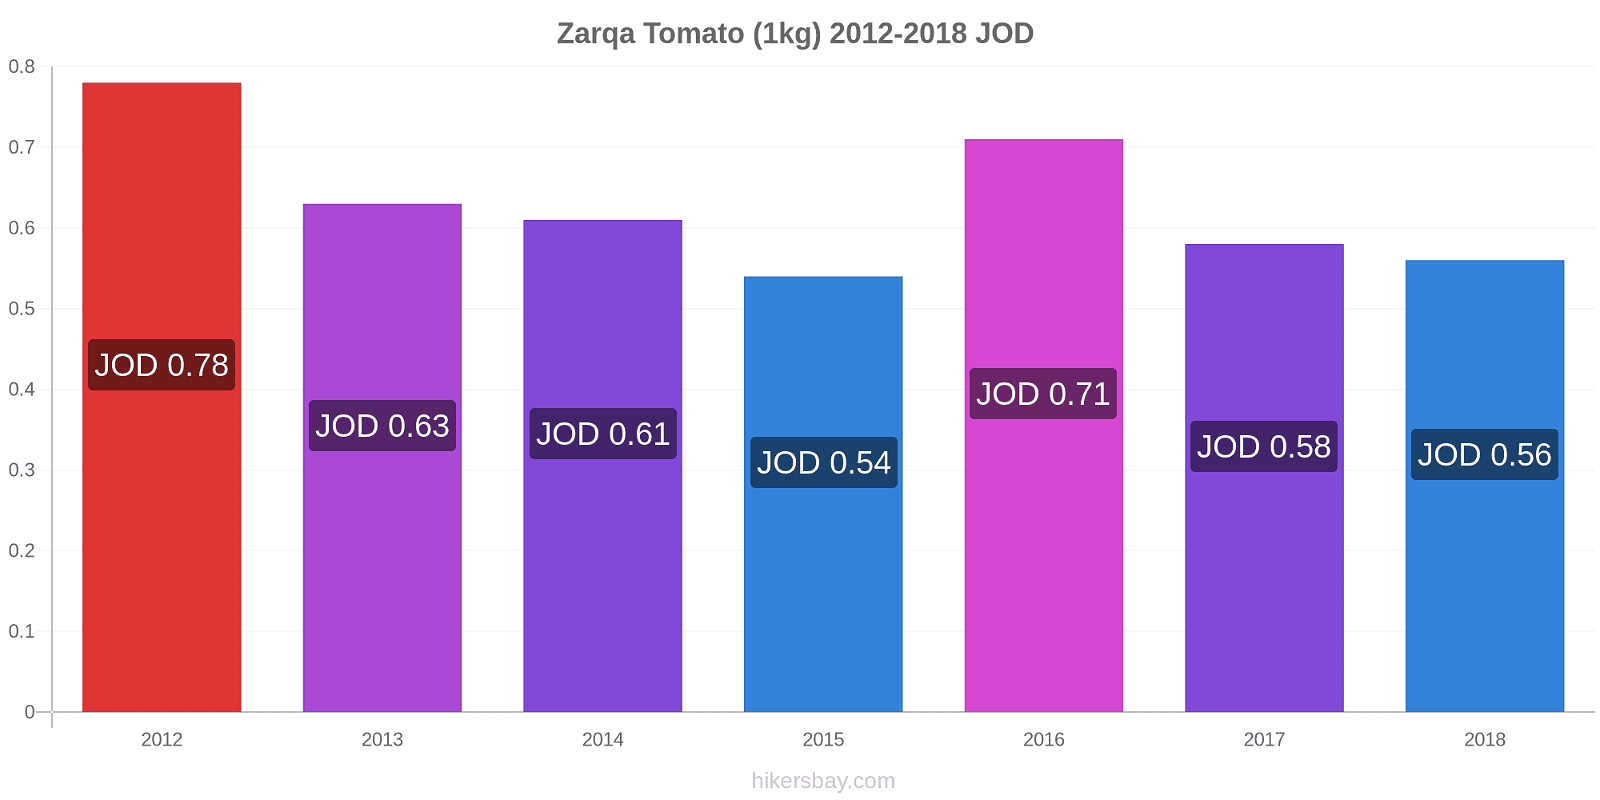 Zarqa price changes Tomato (1kg) hikersbay.com